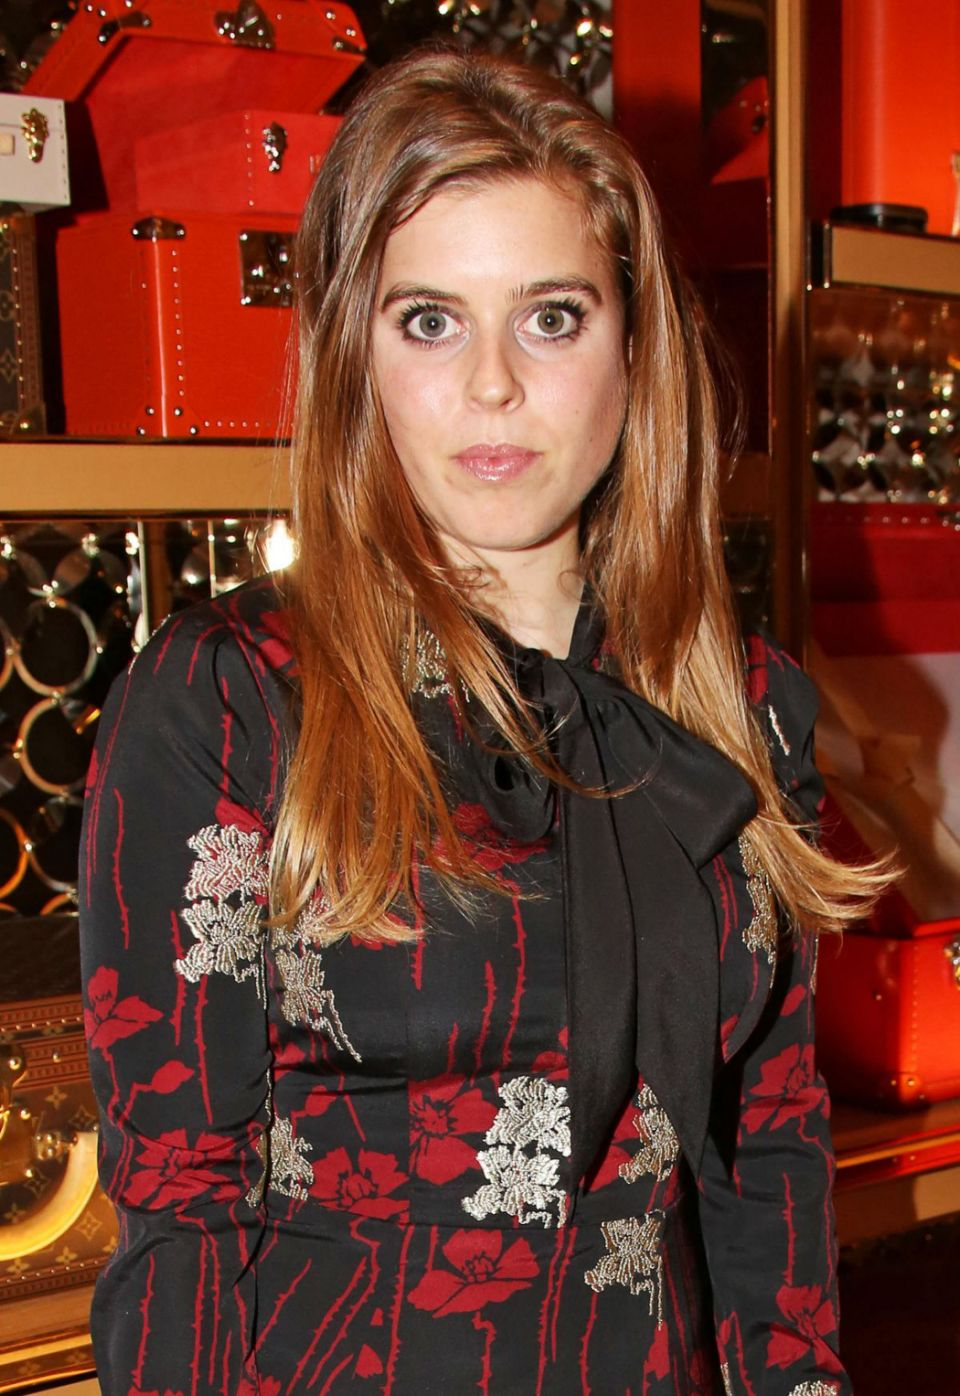 Princess Beatrice is said to be feeling under pressure to settle down. Photo Getty Images